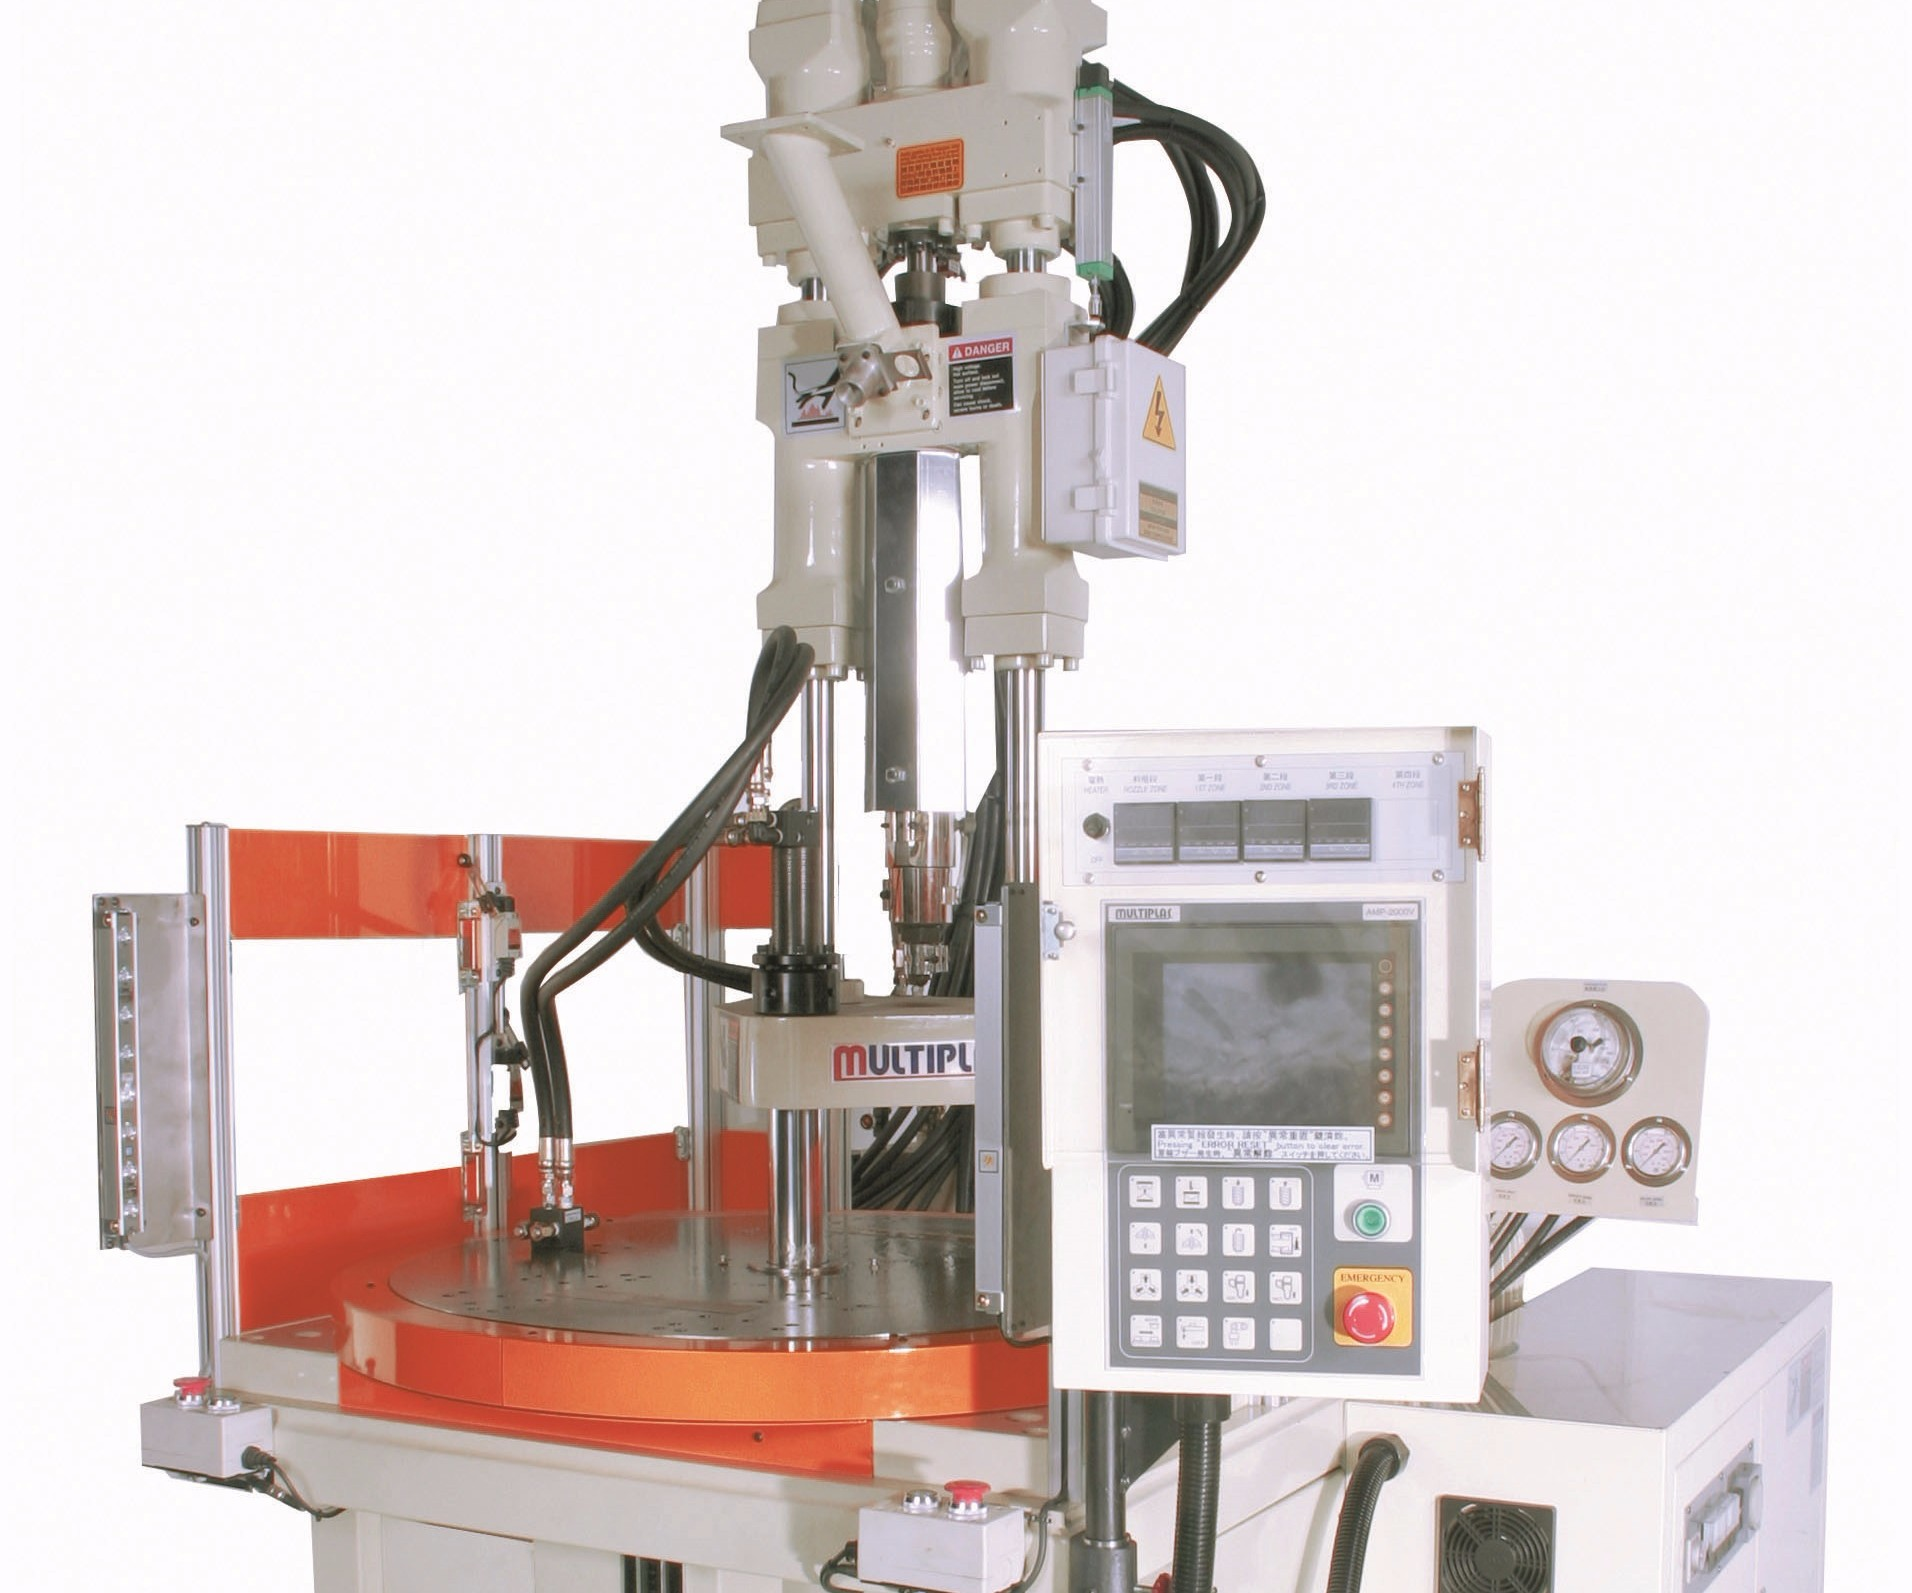 Multiplas V3R vertical injection press, available from Gluco